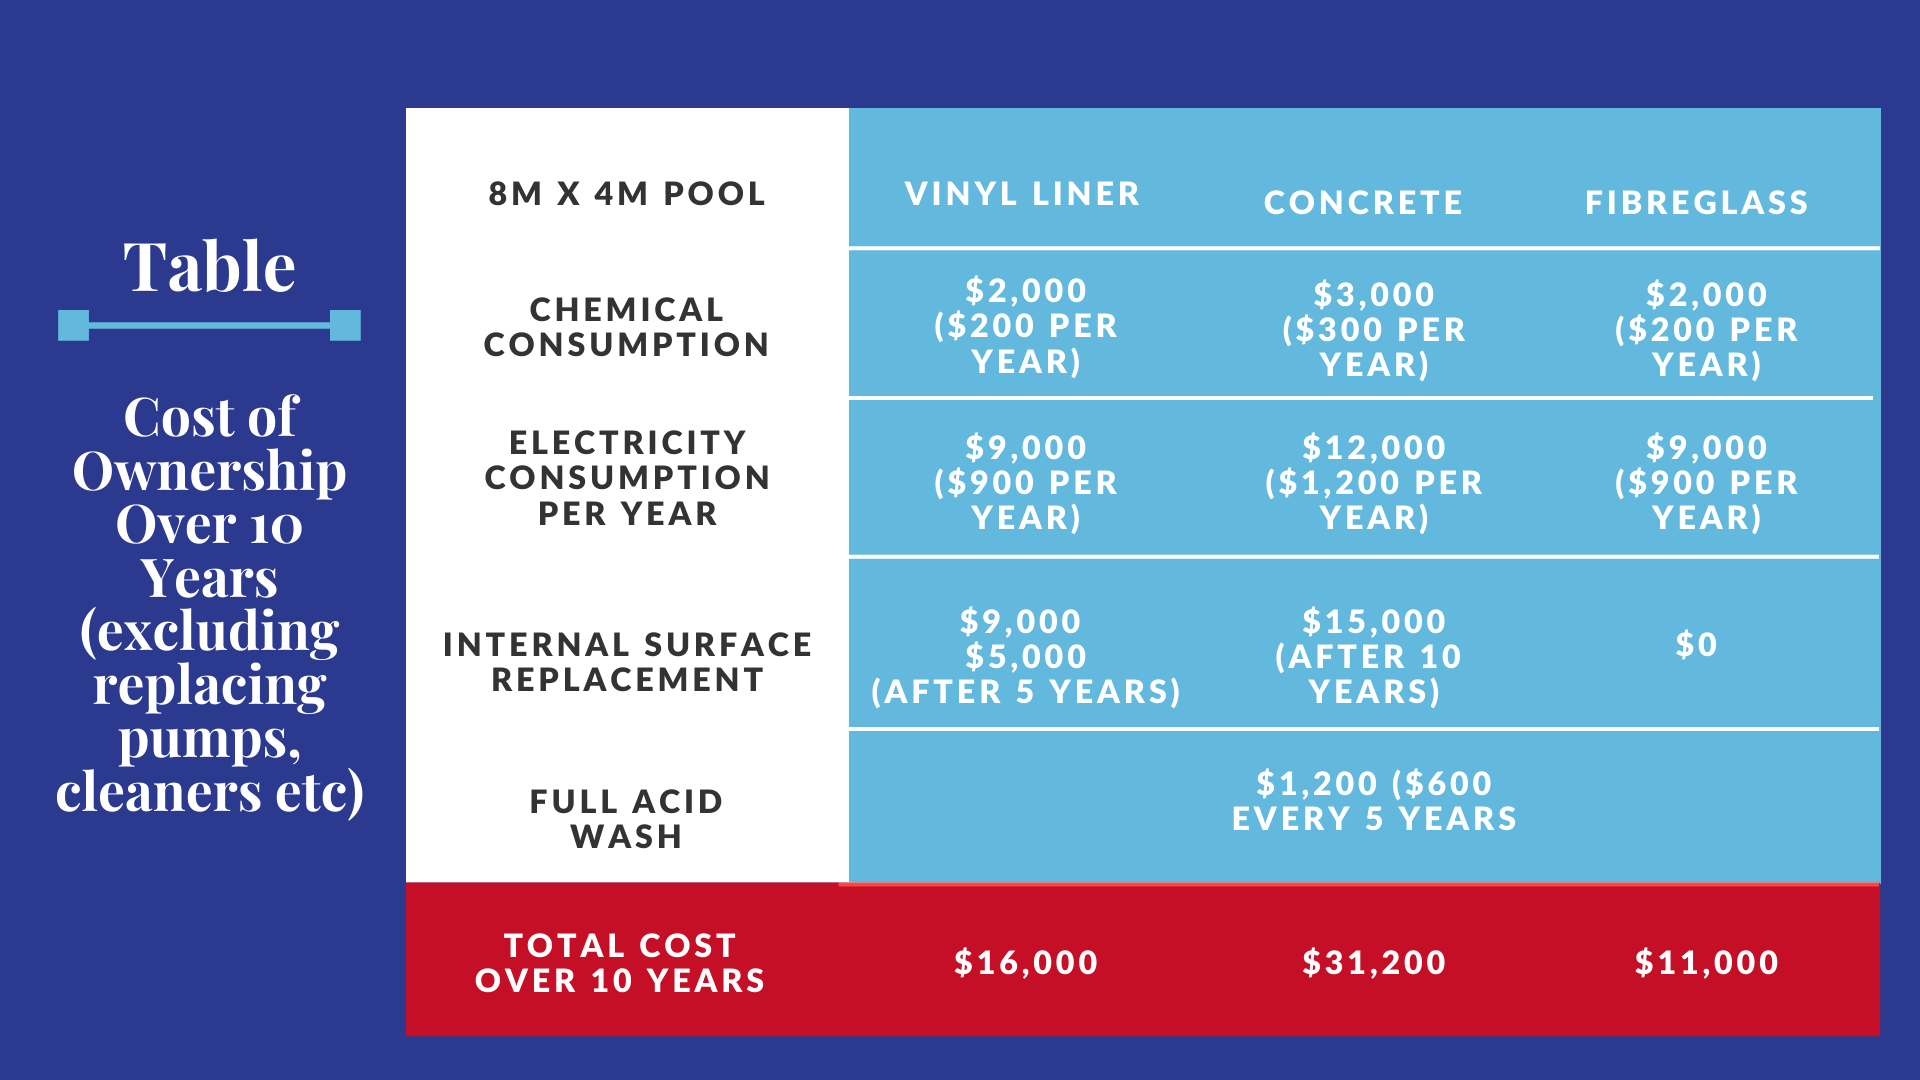 10 Year Pool Cost of Ownership